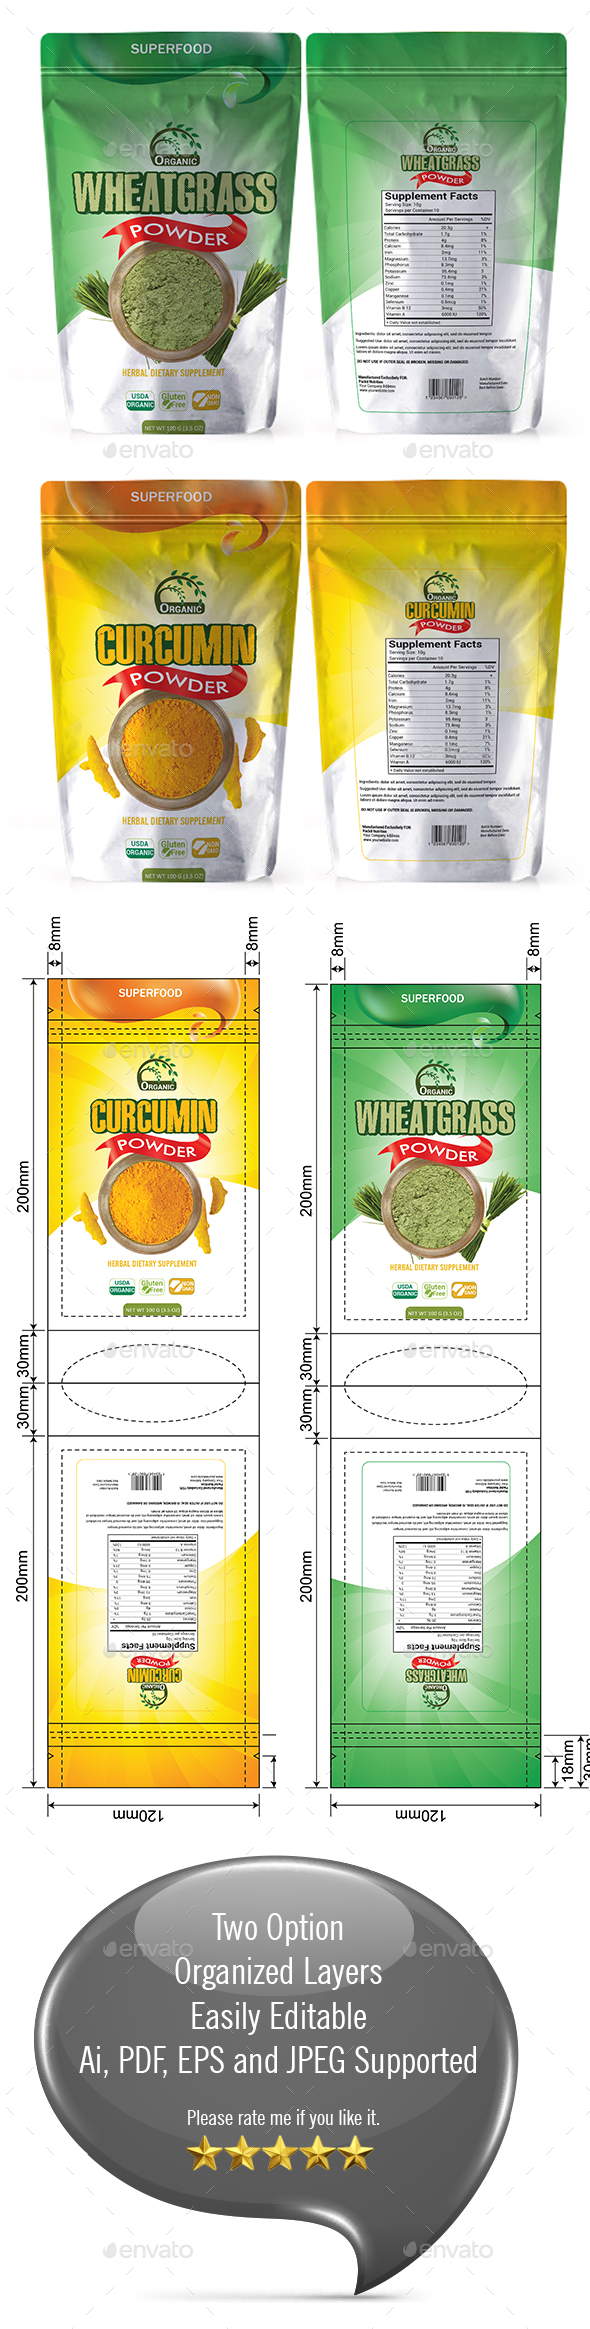 GraphicRiver Wheatgrass Powder Packaging Template 21158307